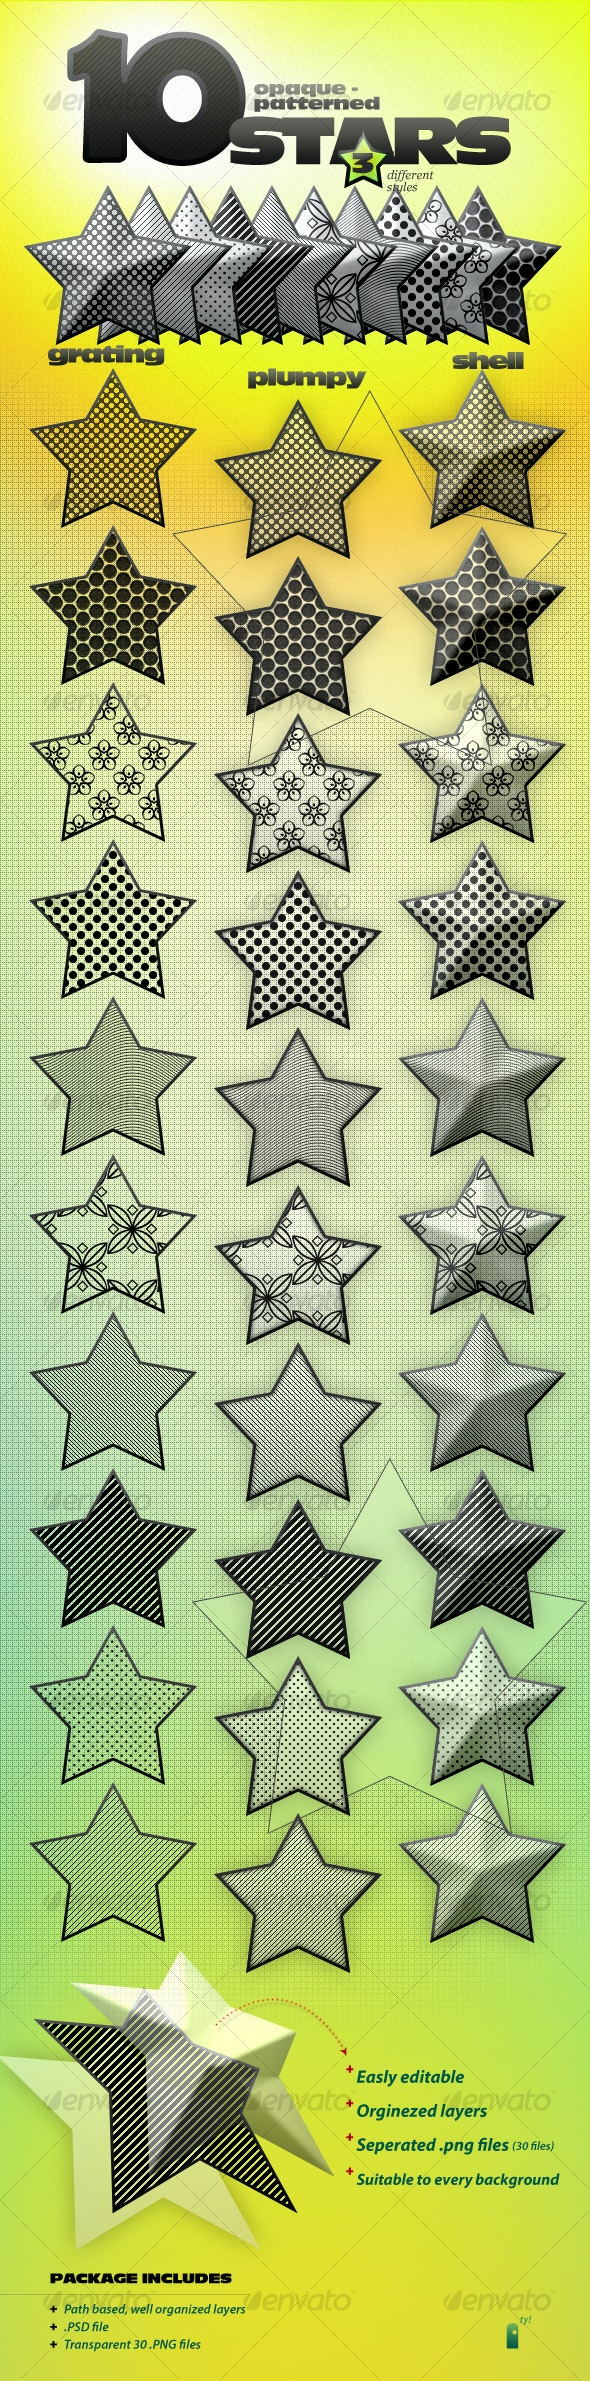 Opaque Stars With 10 Patterns and 3 styles - Miscellaneous Graphics